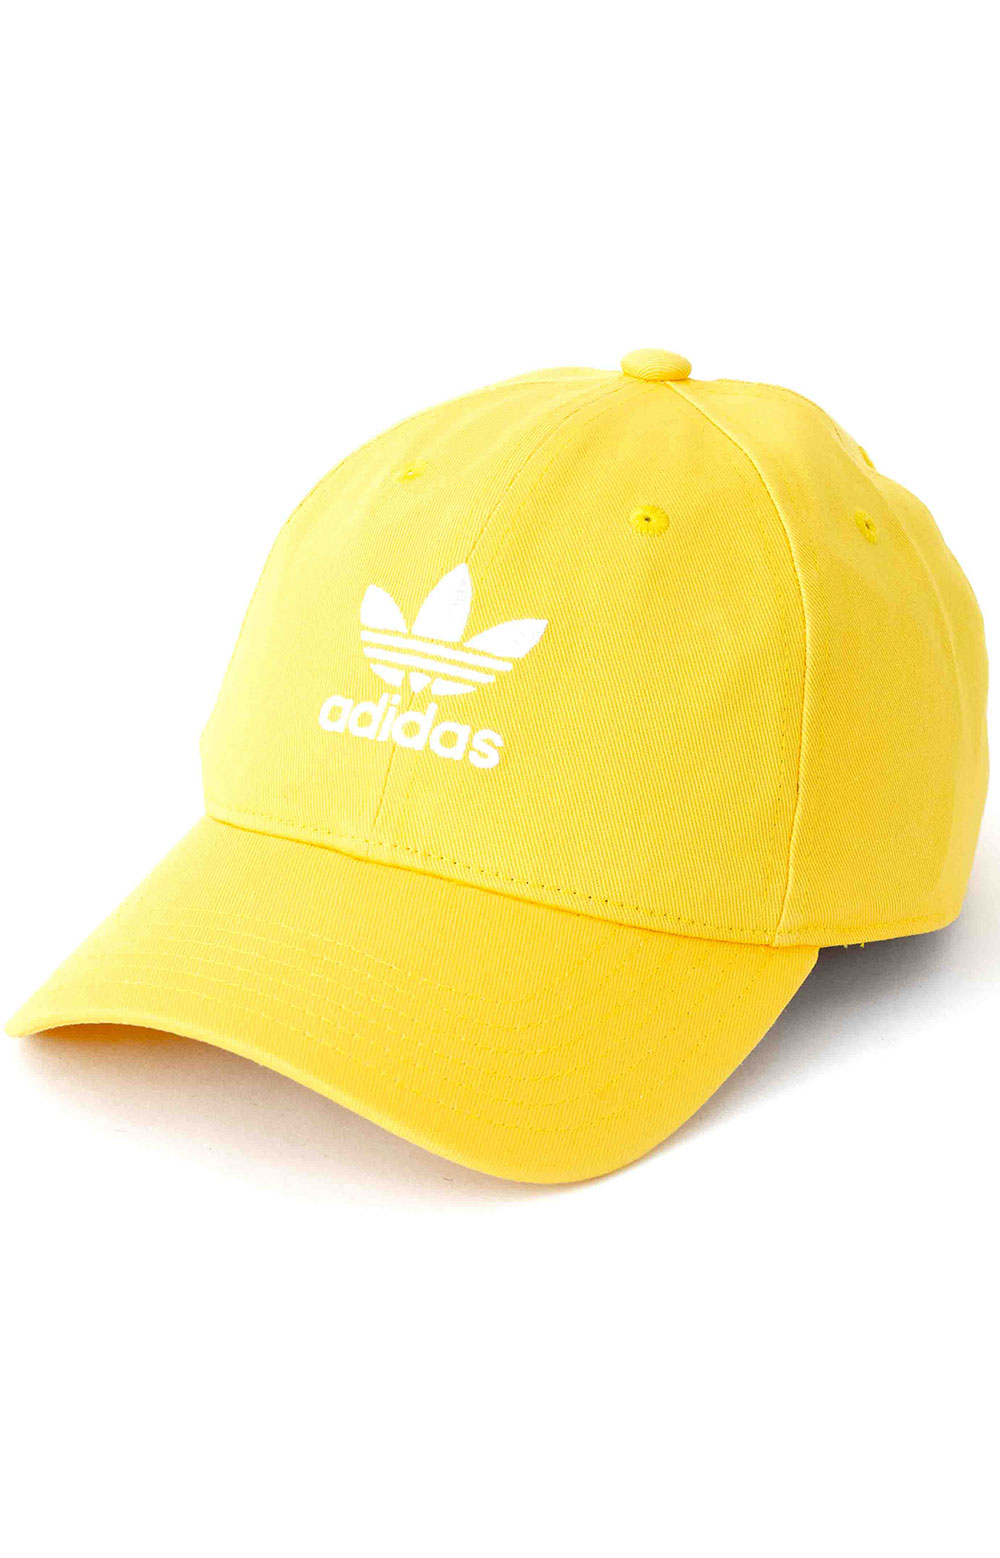 Originals Relaxed Strap-Back Hat - Yellow